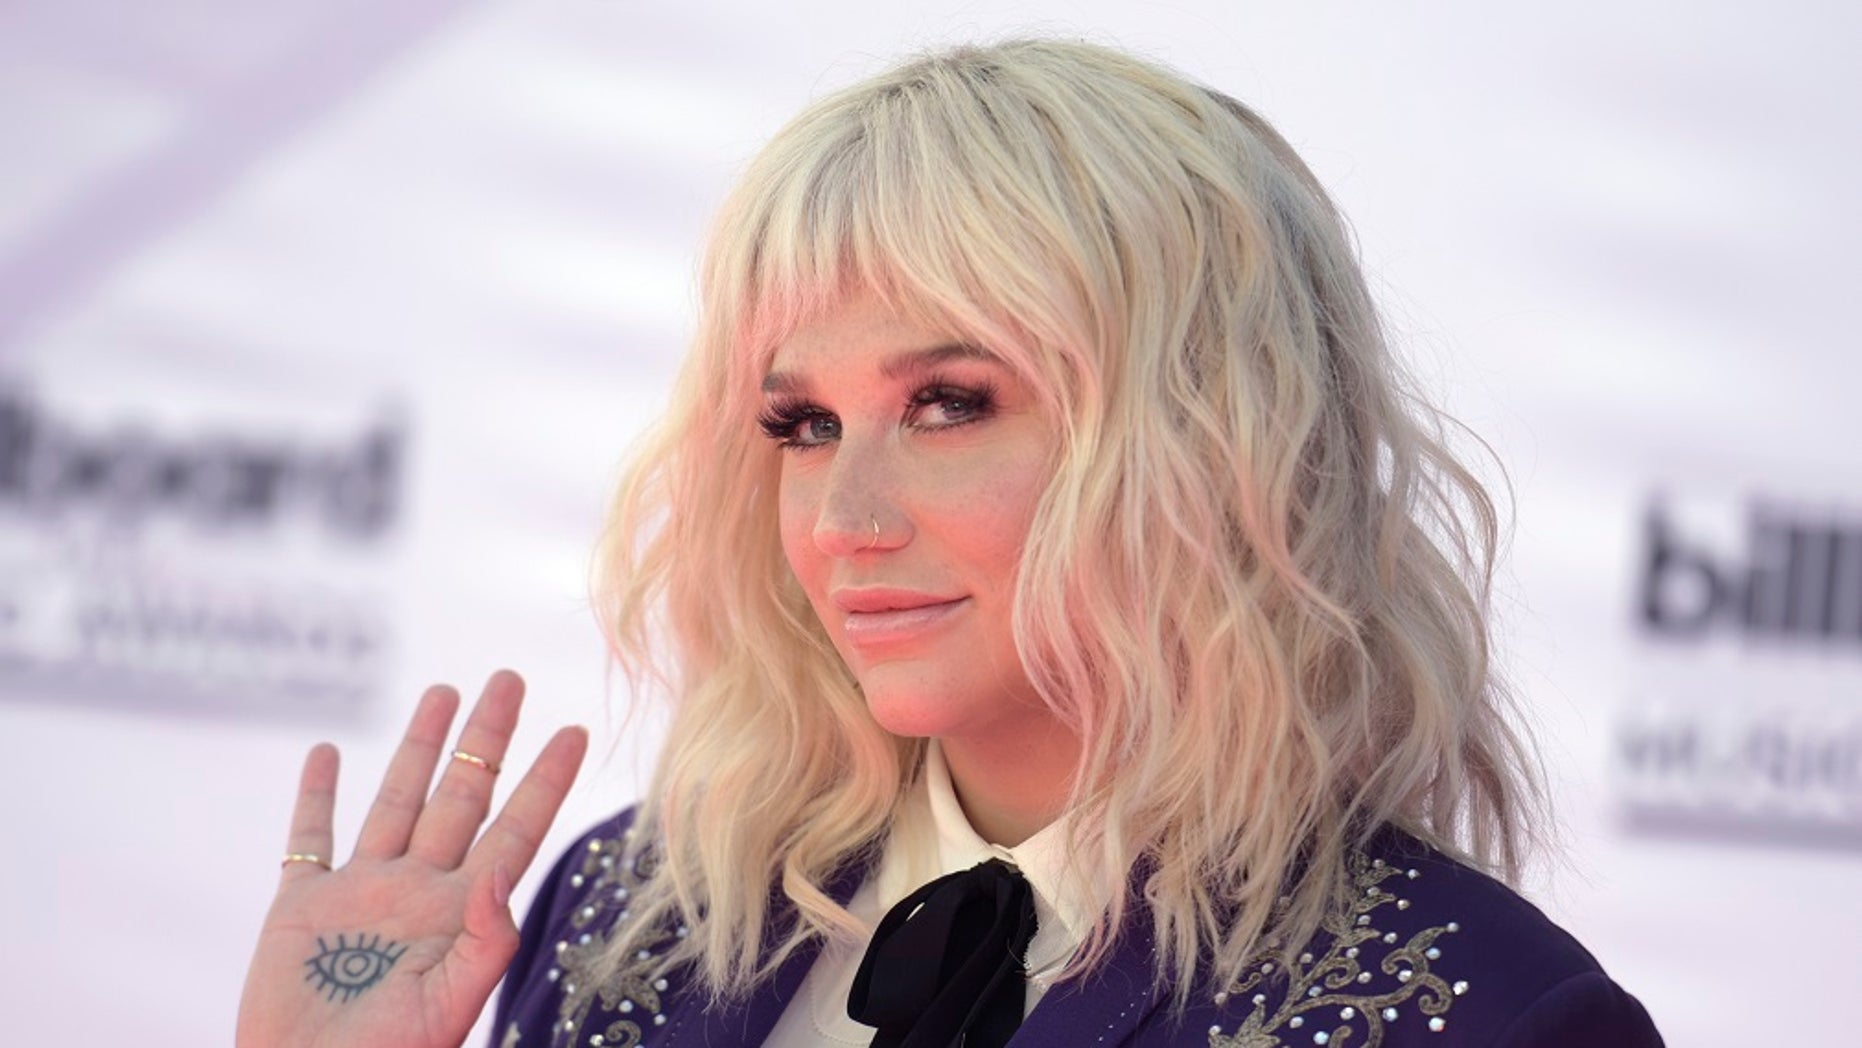 """Kesha released """"Praying"""" her first new music in four years following a high-profile legal battle with her former producer, Dr. Luke."""